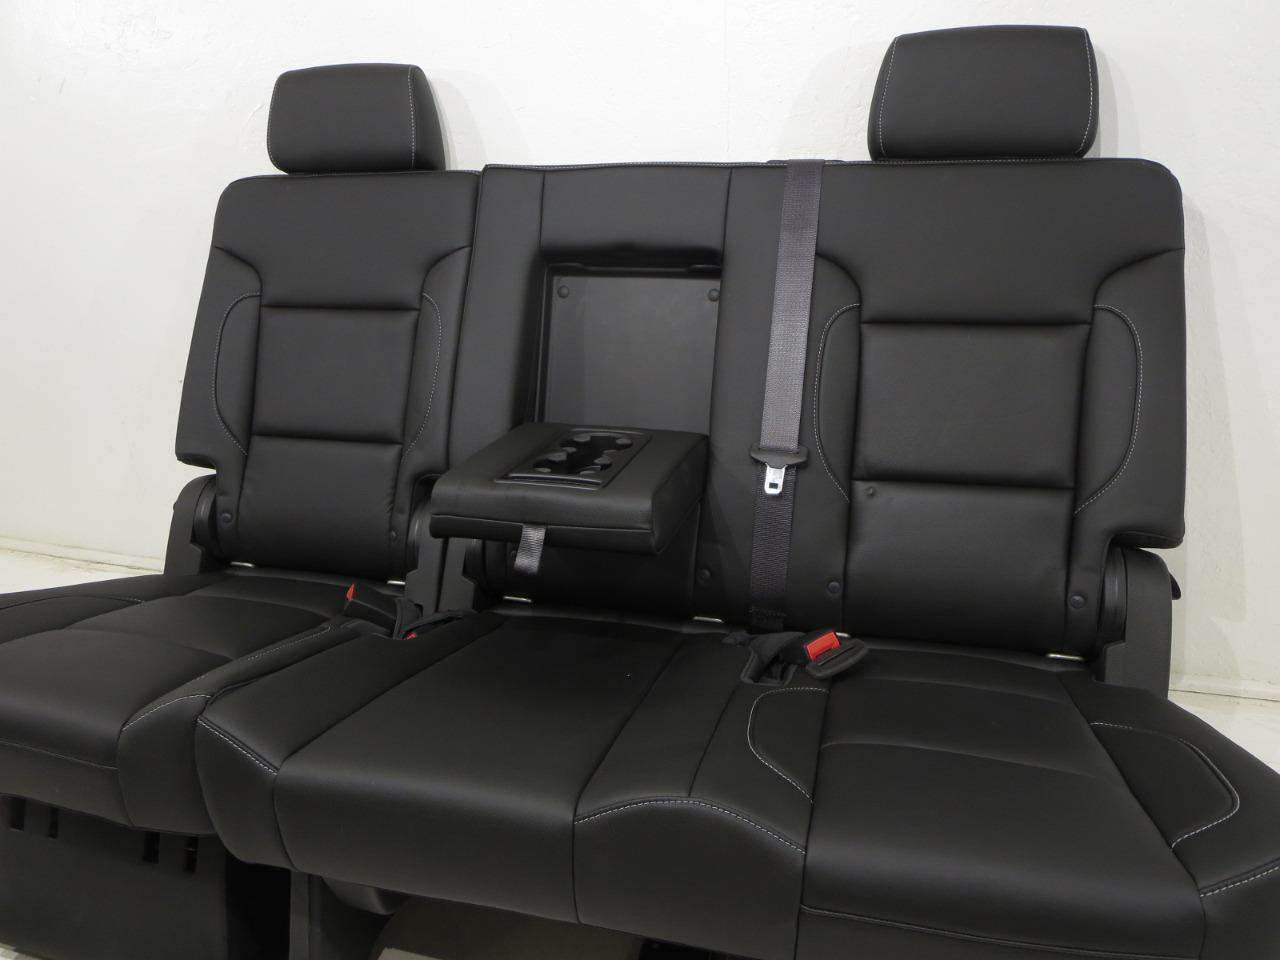 Prime Gm Tahoe Yukon Oem Leather Rear Bench Seat Second Row 60 40 2015 2016 2017 Squirreltailoven Fun Painted Chair Ideas Images Squirreltailovenorg